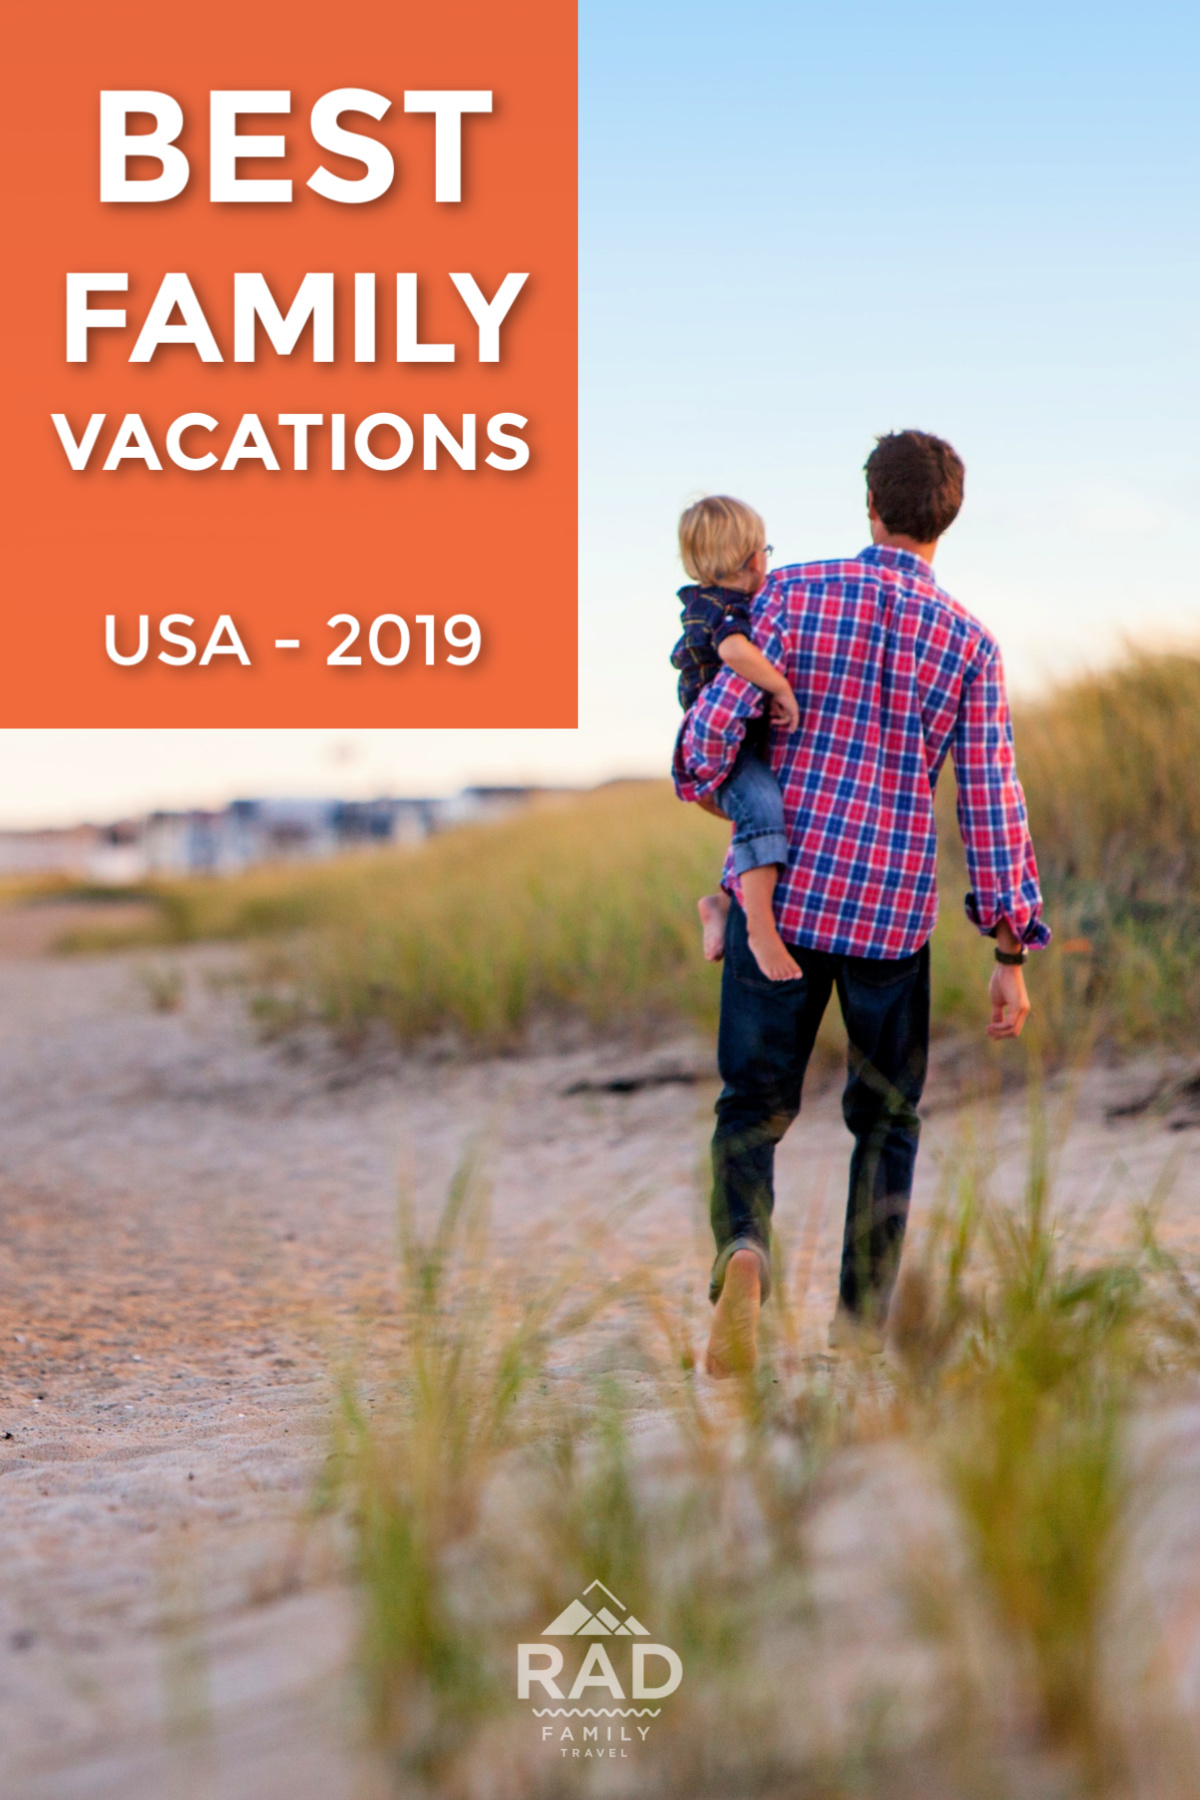 best family vacations pin 3.jpg